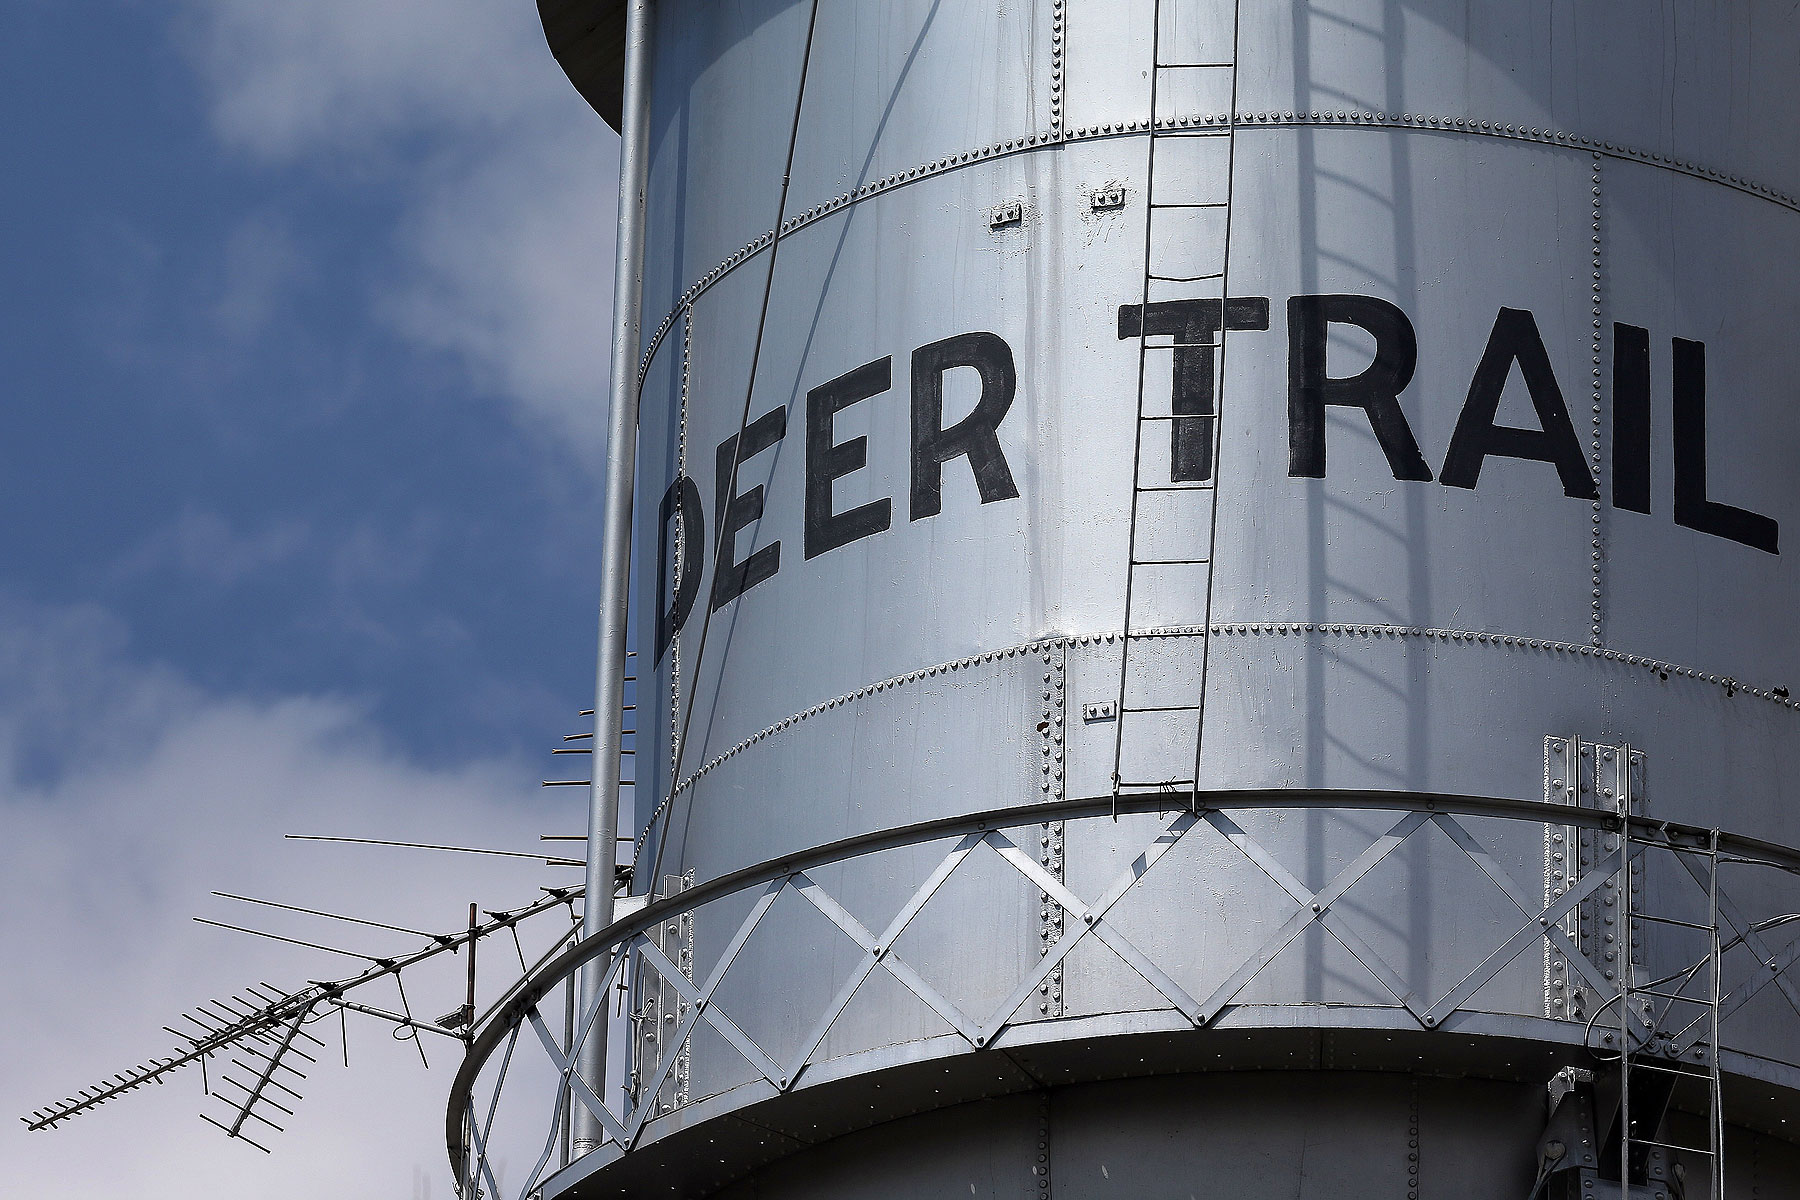 Residents of Deer Trail voted Tuesday against issuing licenses for drone hunting